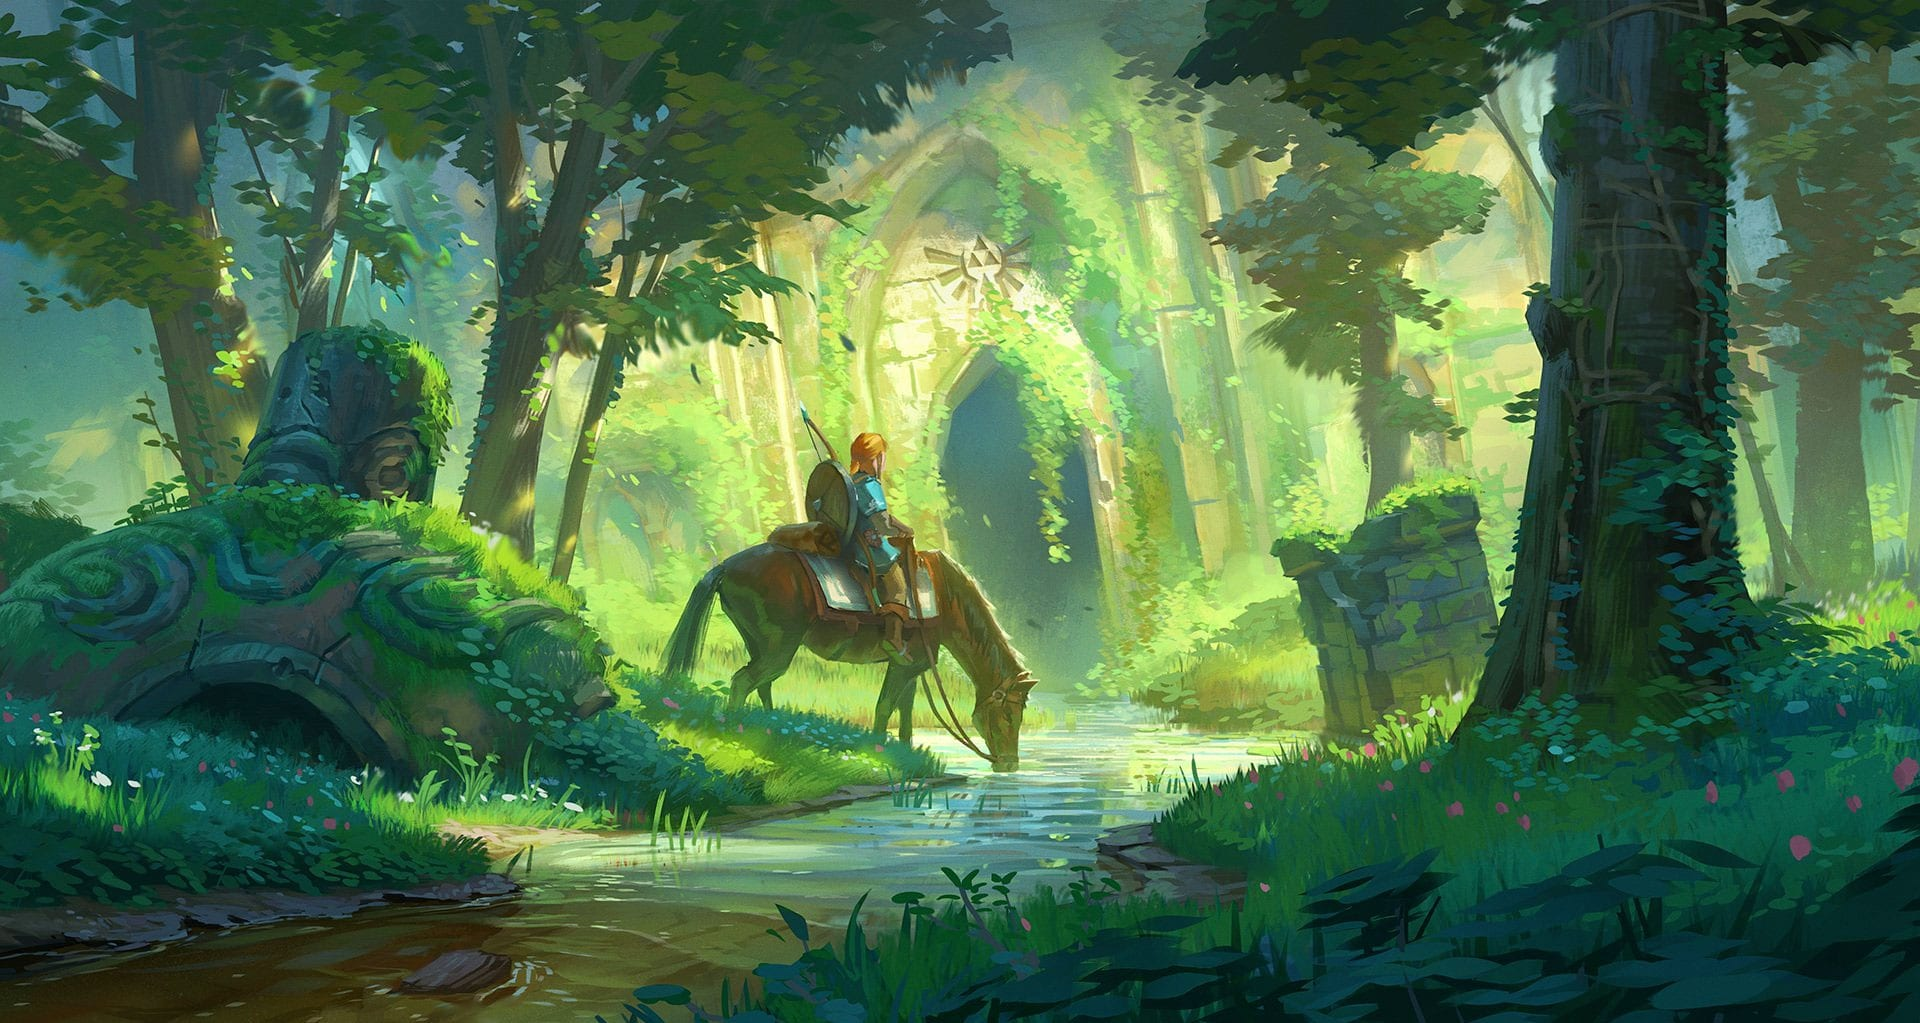 zelda breath of the wild added to official zelda timeline general